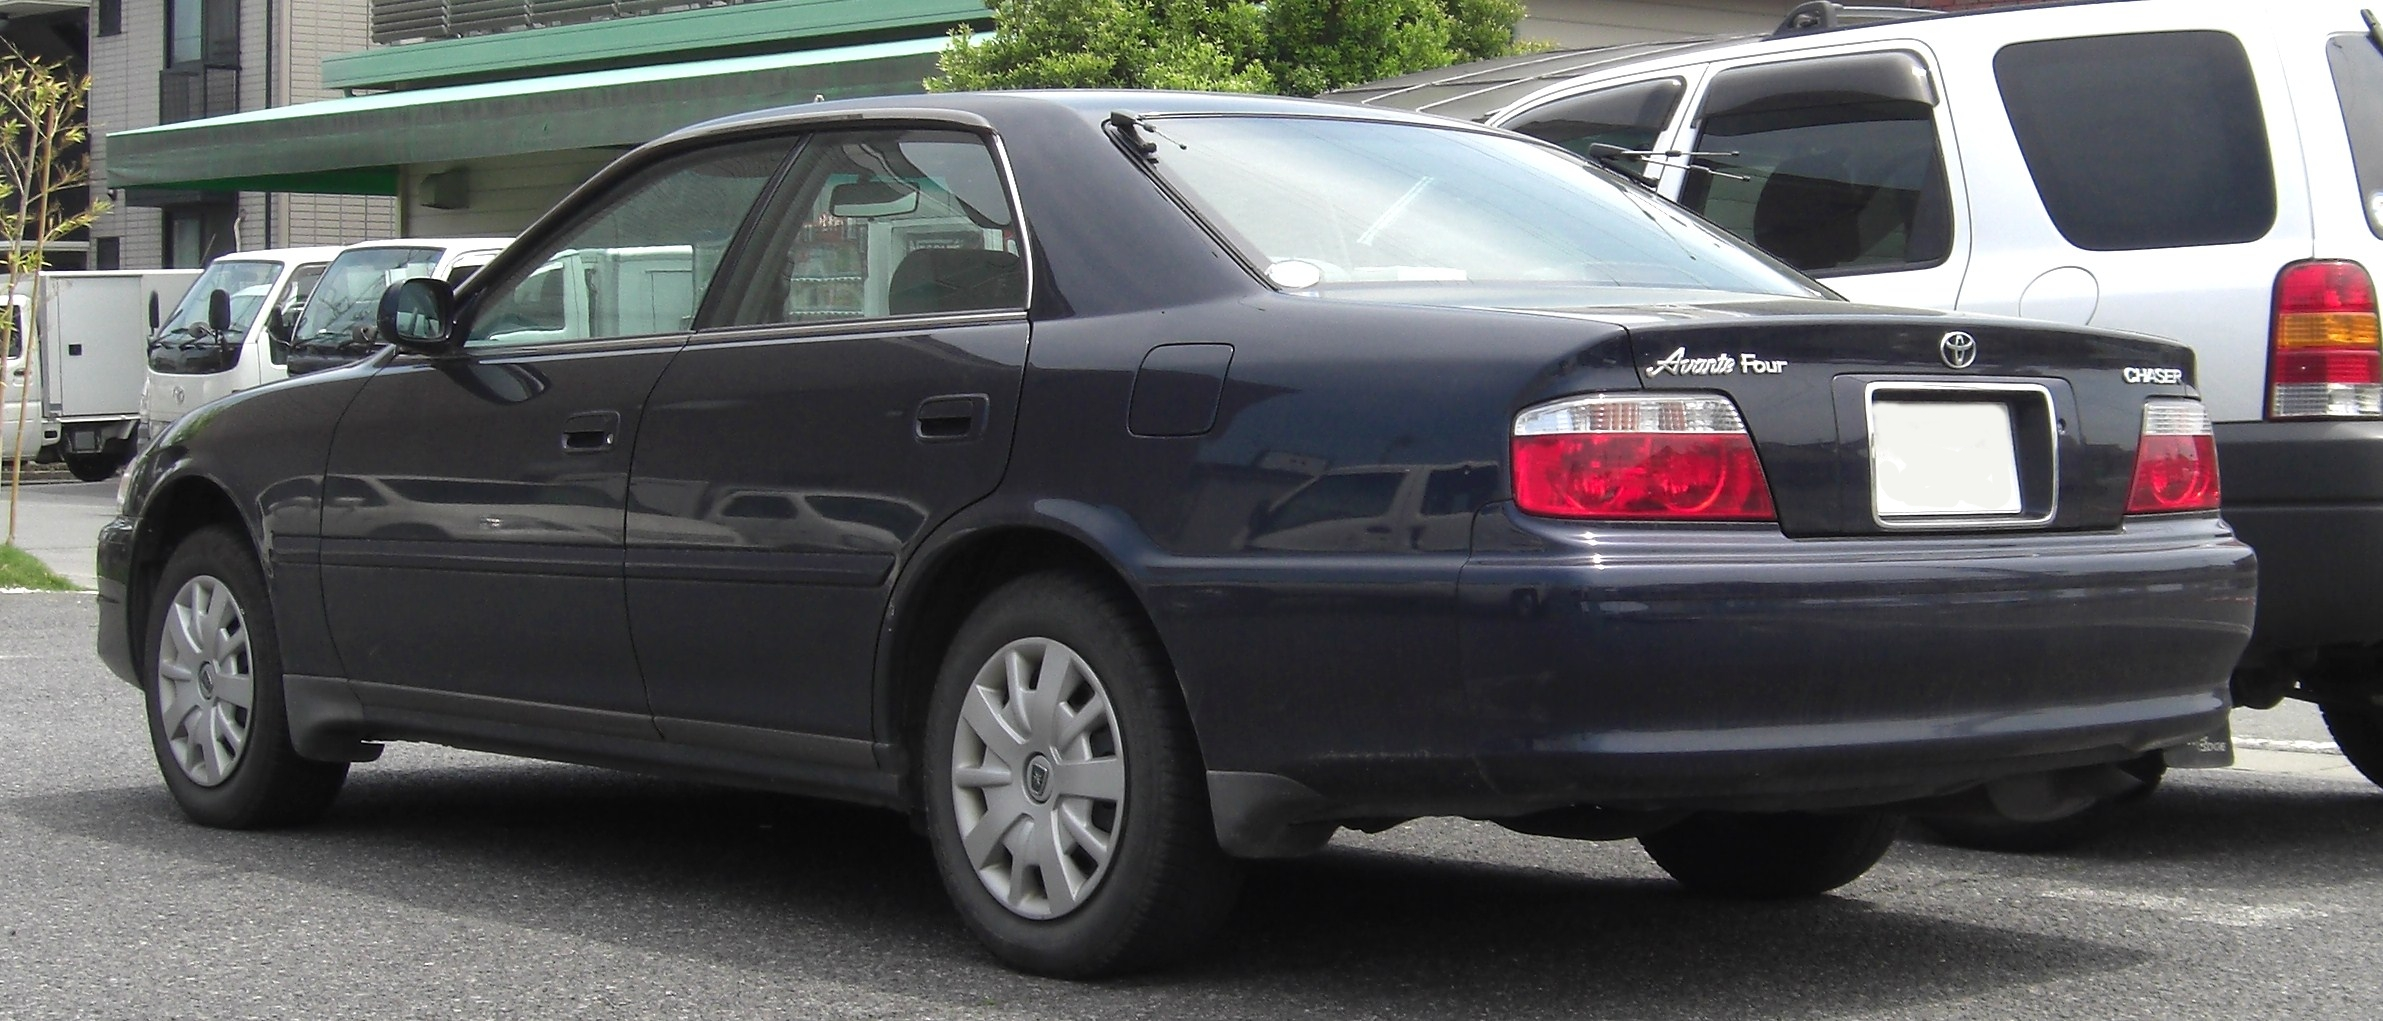 toyota chaser (zx 100) 1999 models #2